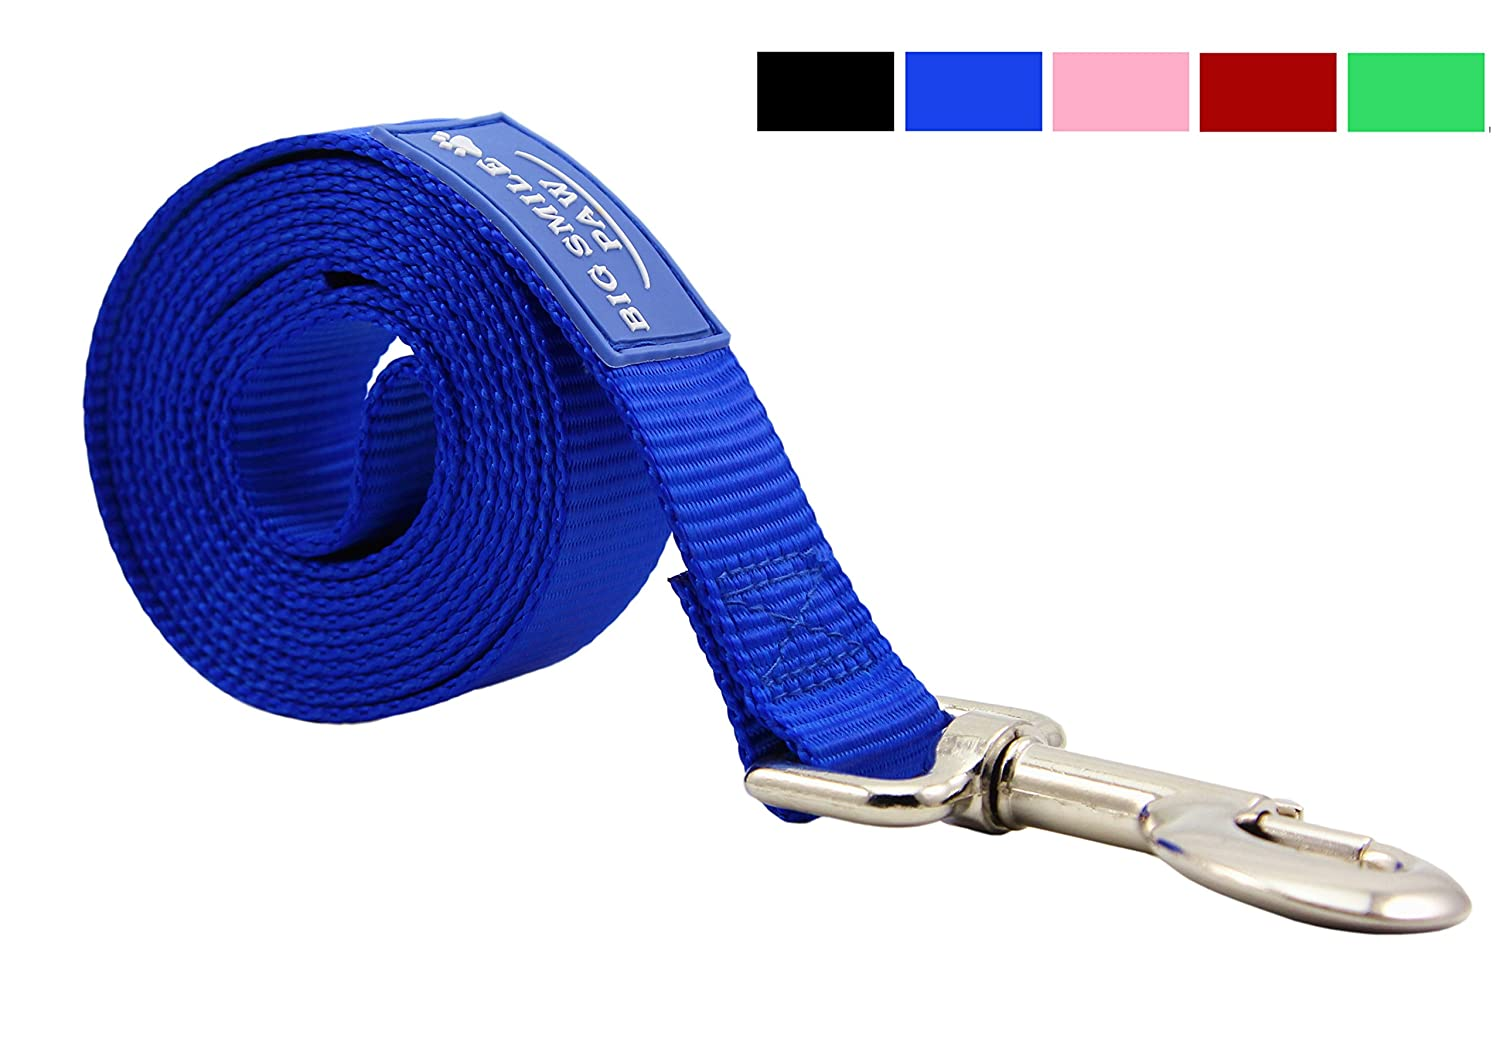 bluee Big Smile PAW Dog Leash Nylon Durable,5 Foot Long 1 Inch Wide (bluee)